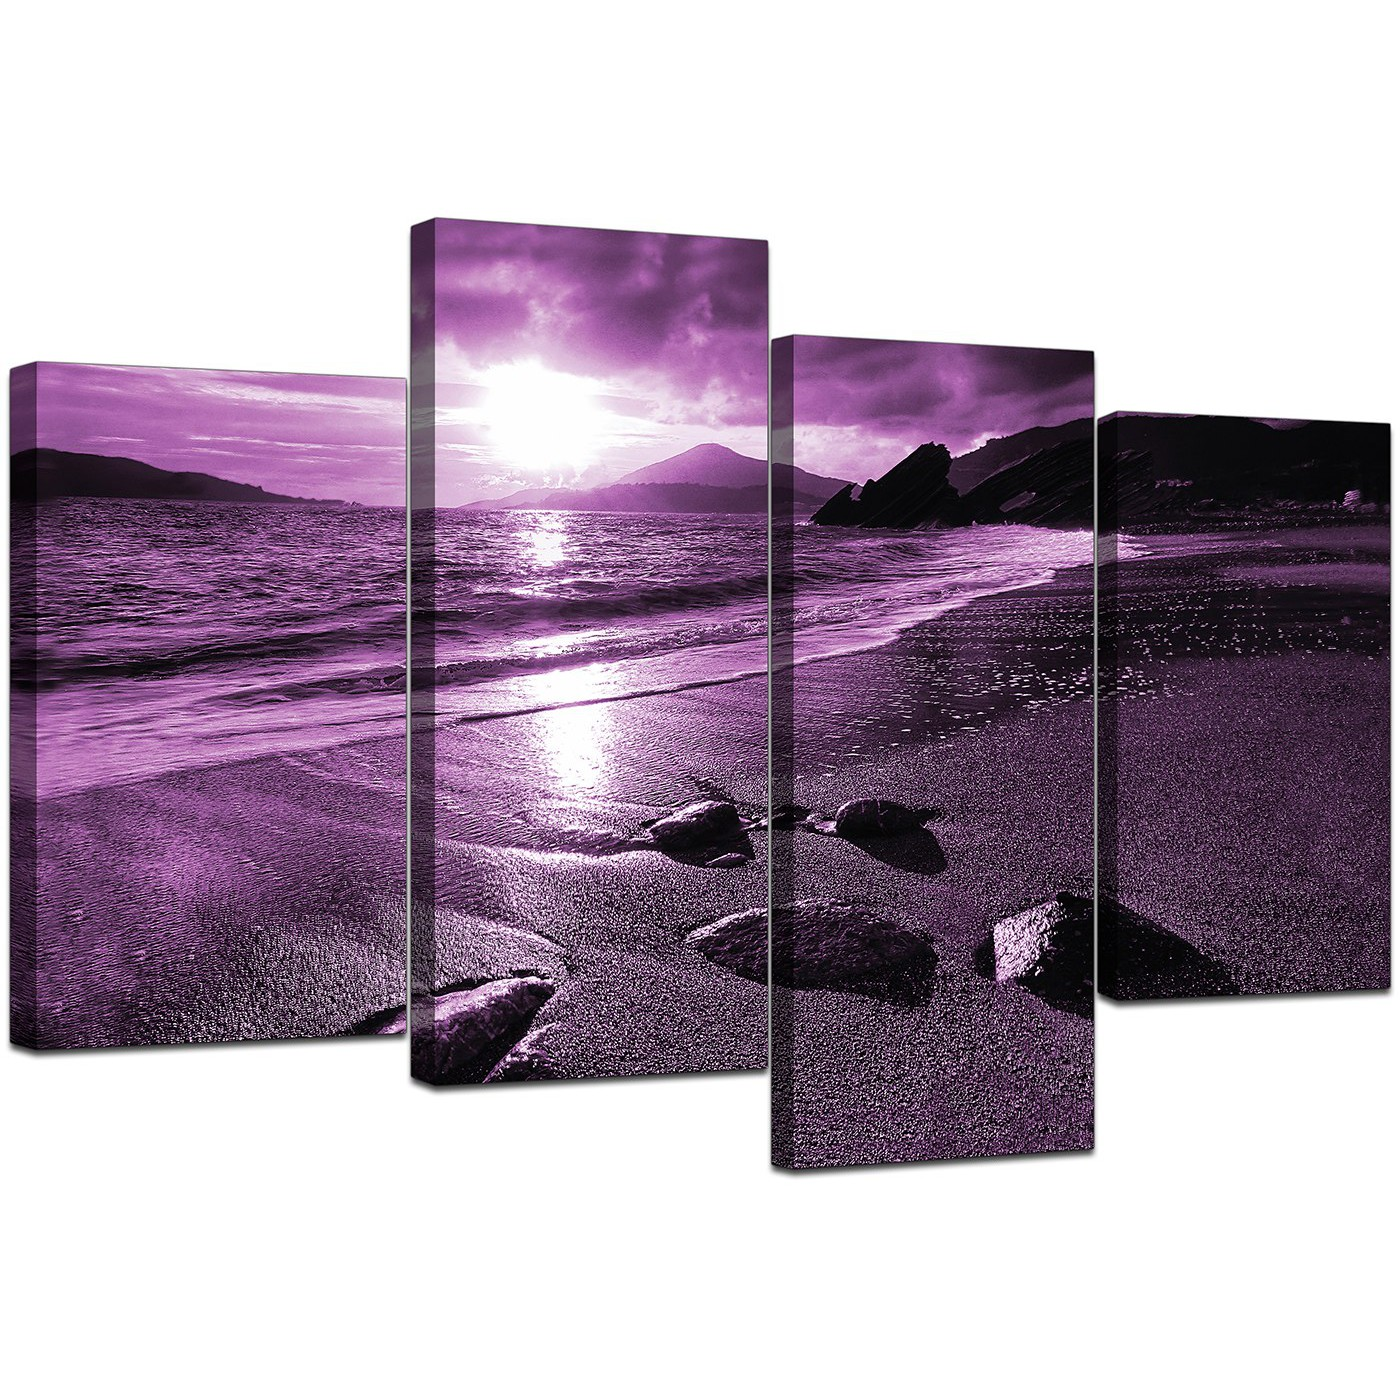 High Quality Display Gallery Item 5; 4 Piece Set Of Living Room Purple Canvas Picture  Display Gallery Item 6